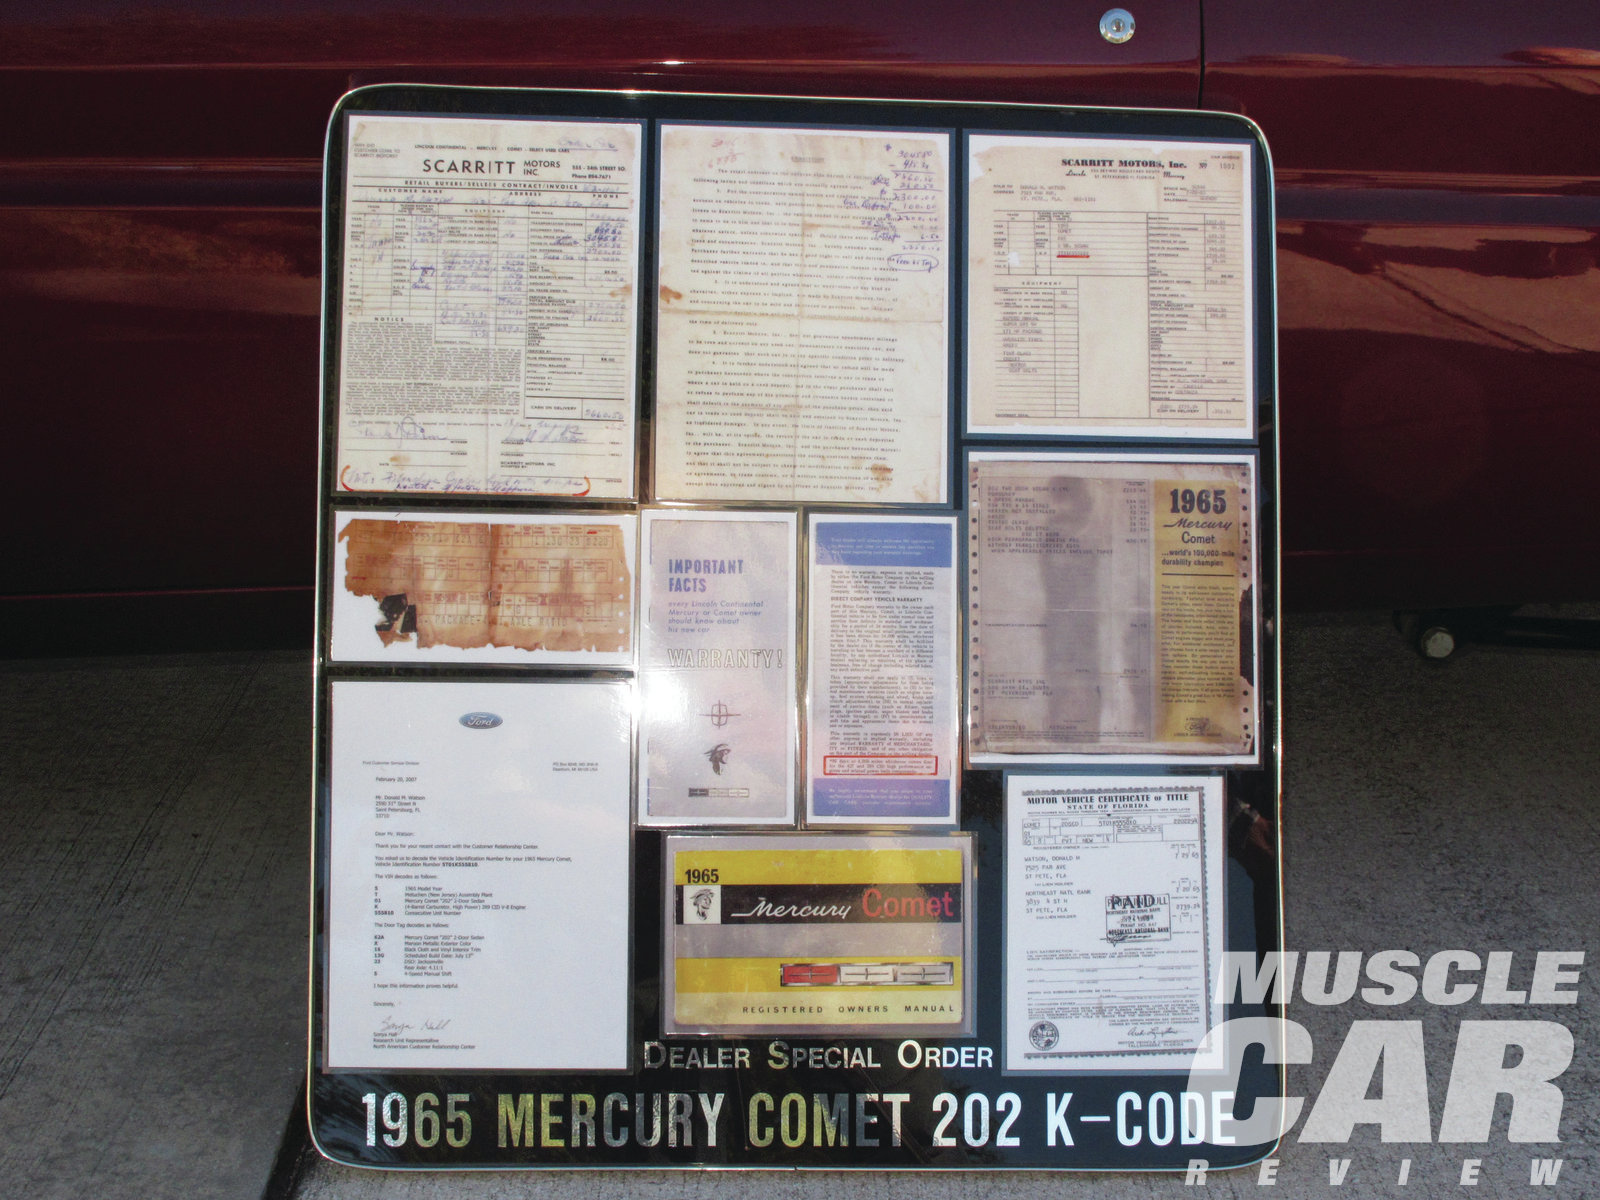 Anyone doubting the provenance of this rare Mercury can read all about it on Don's display board. He has kept every scrap of paper for the car since he ordered it new.